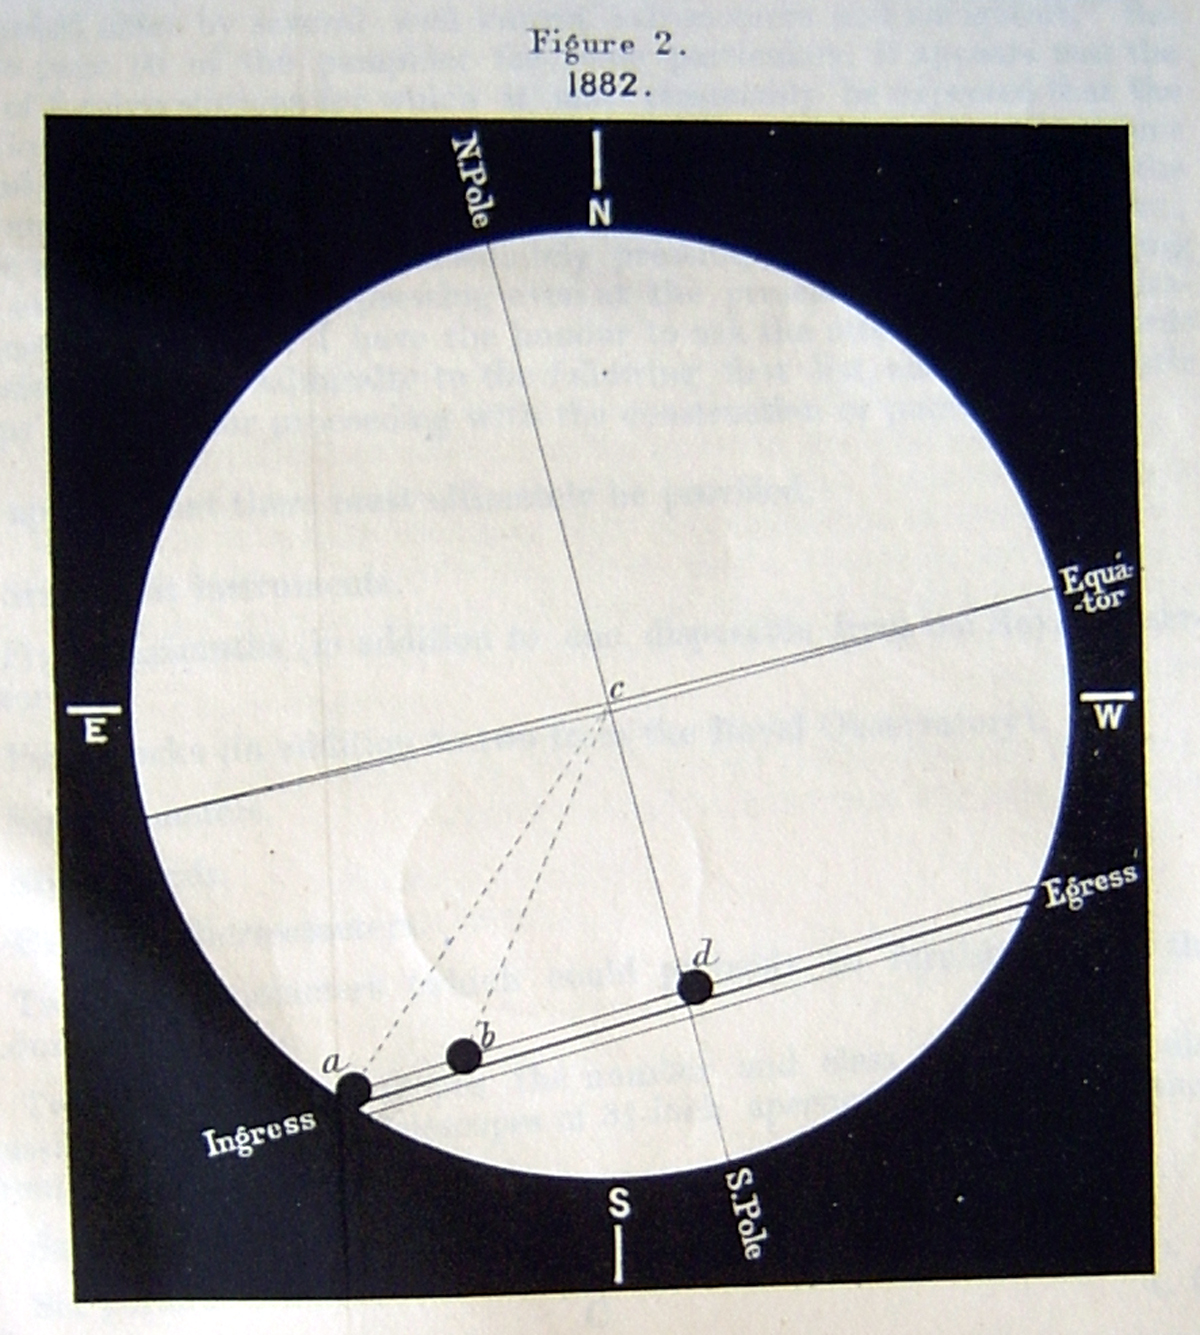 Warren de la Rue's 1868 chart of the path of Venus in 1882